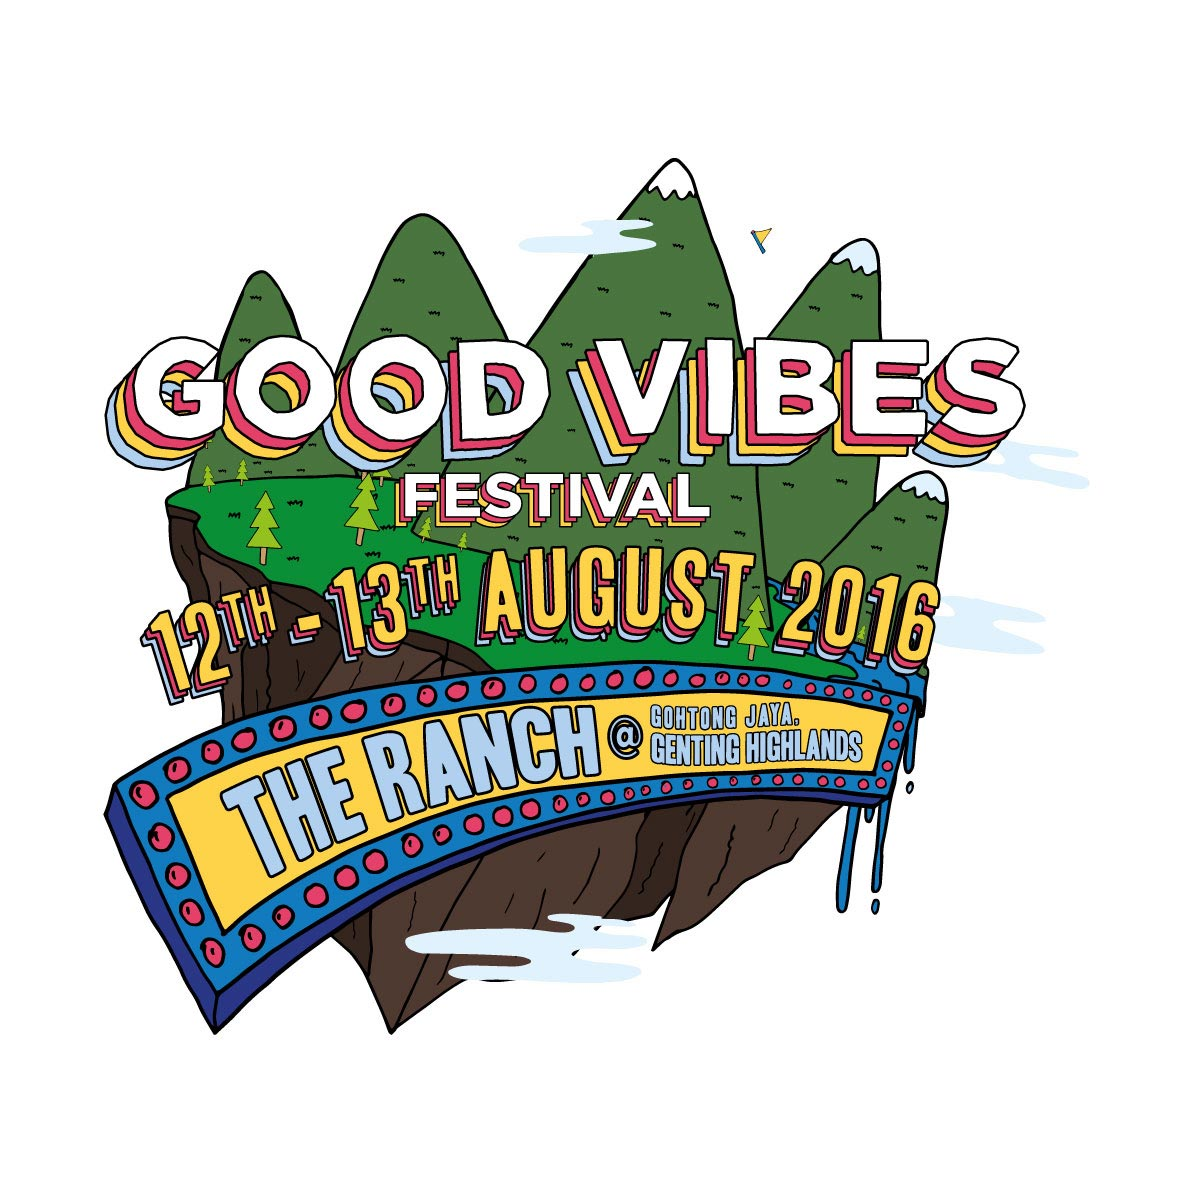 source: Good Vibes Festival